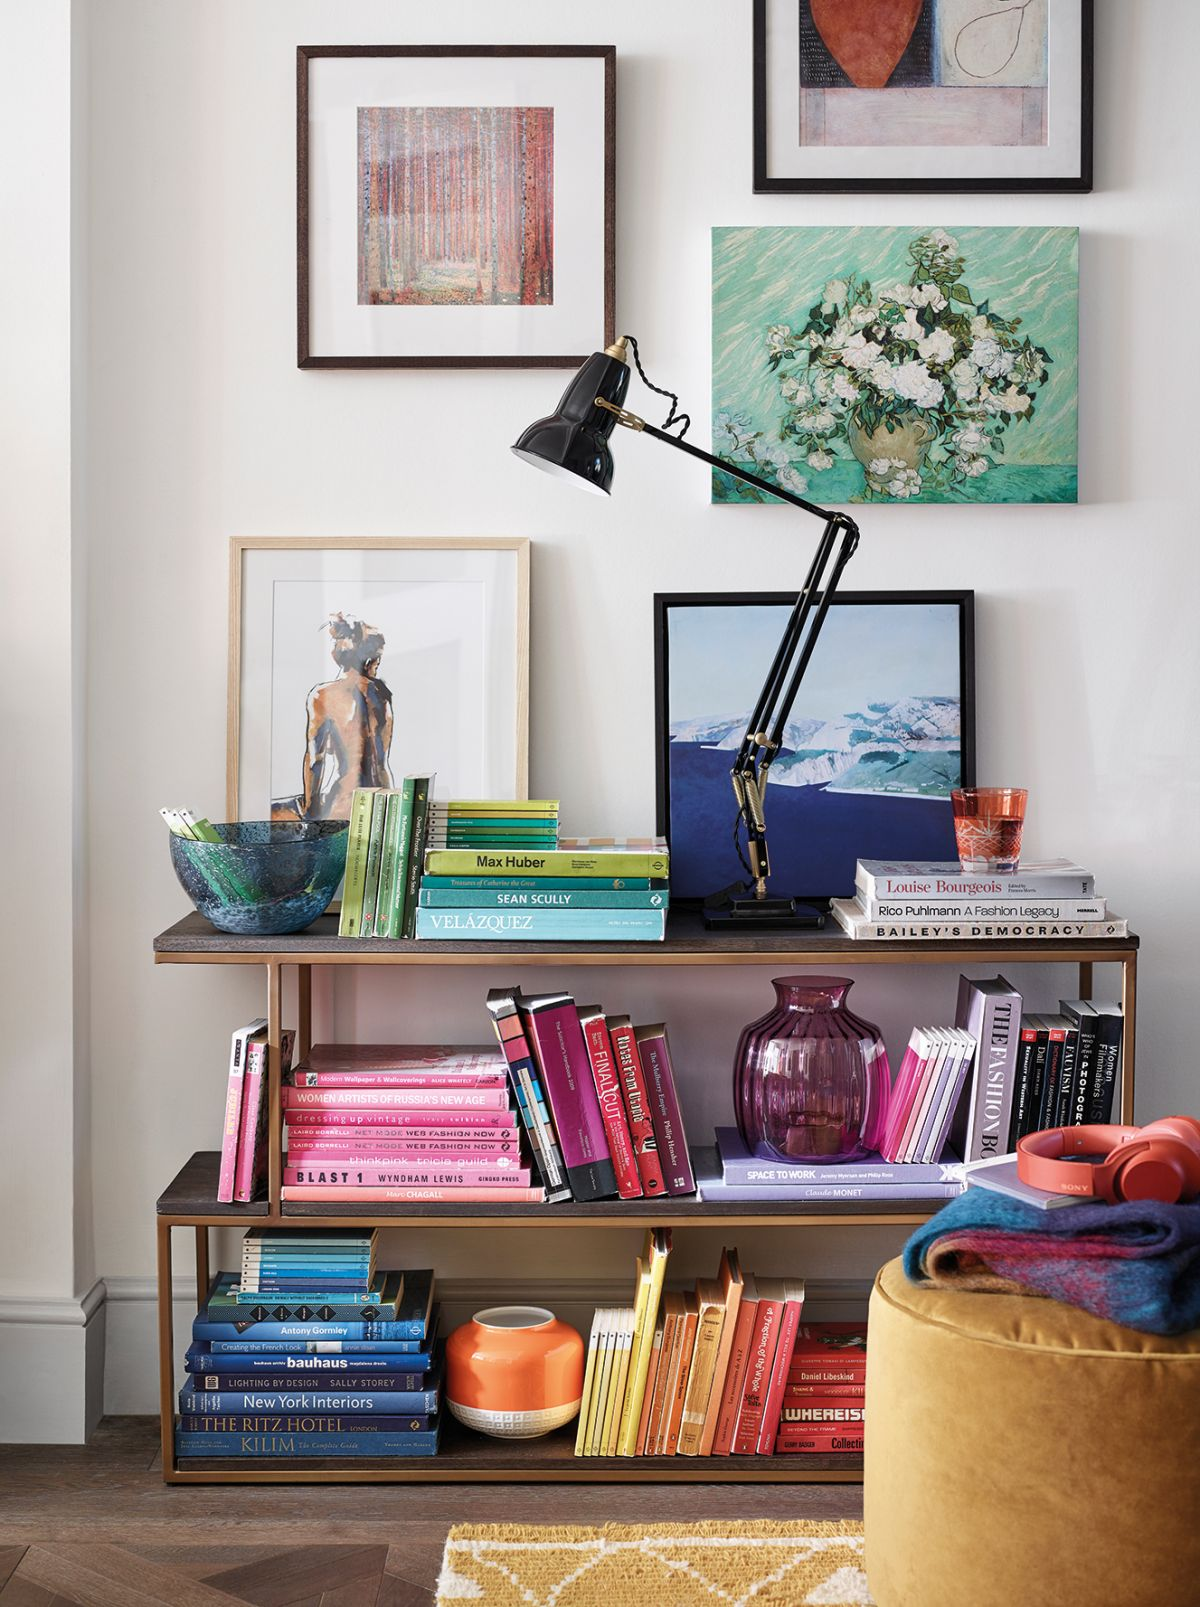 Living room storage ideas: 12 neat ways to stay clutter ...